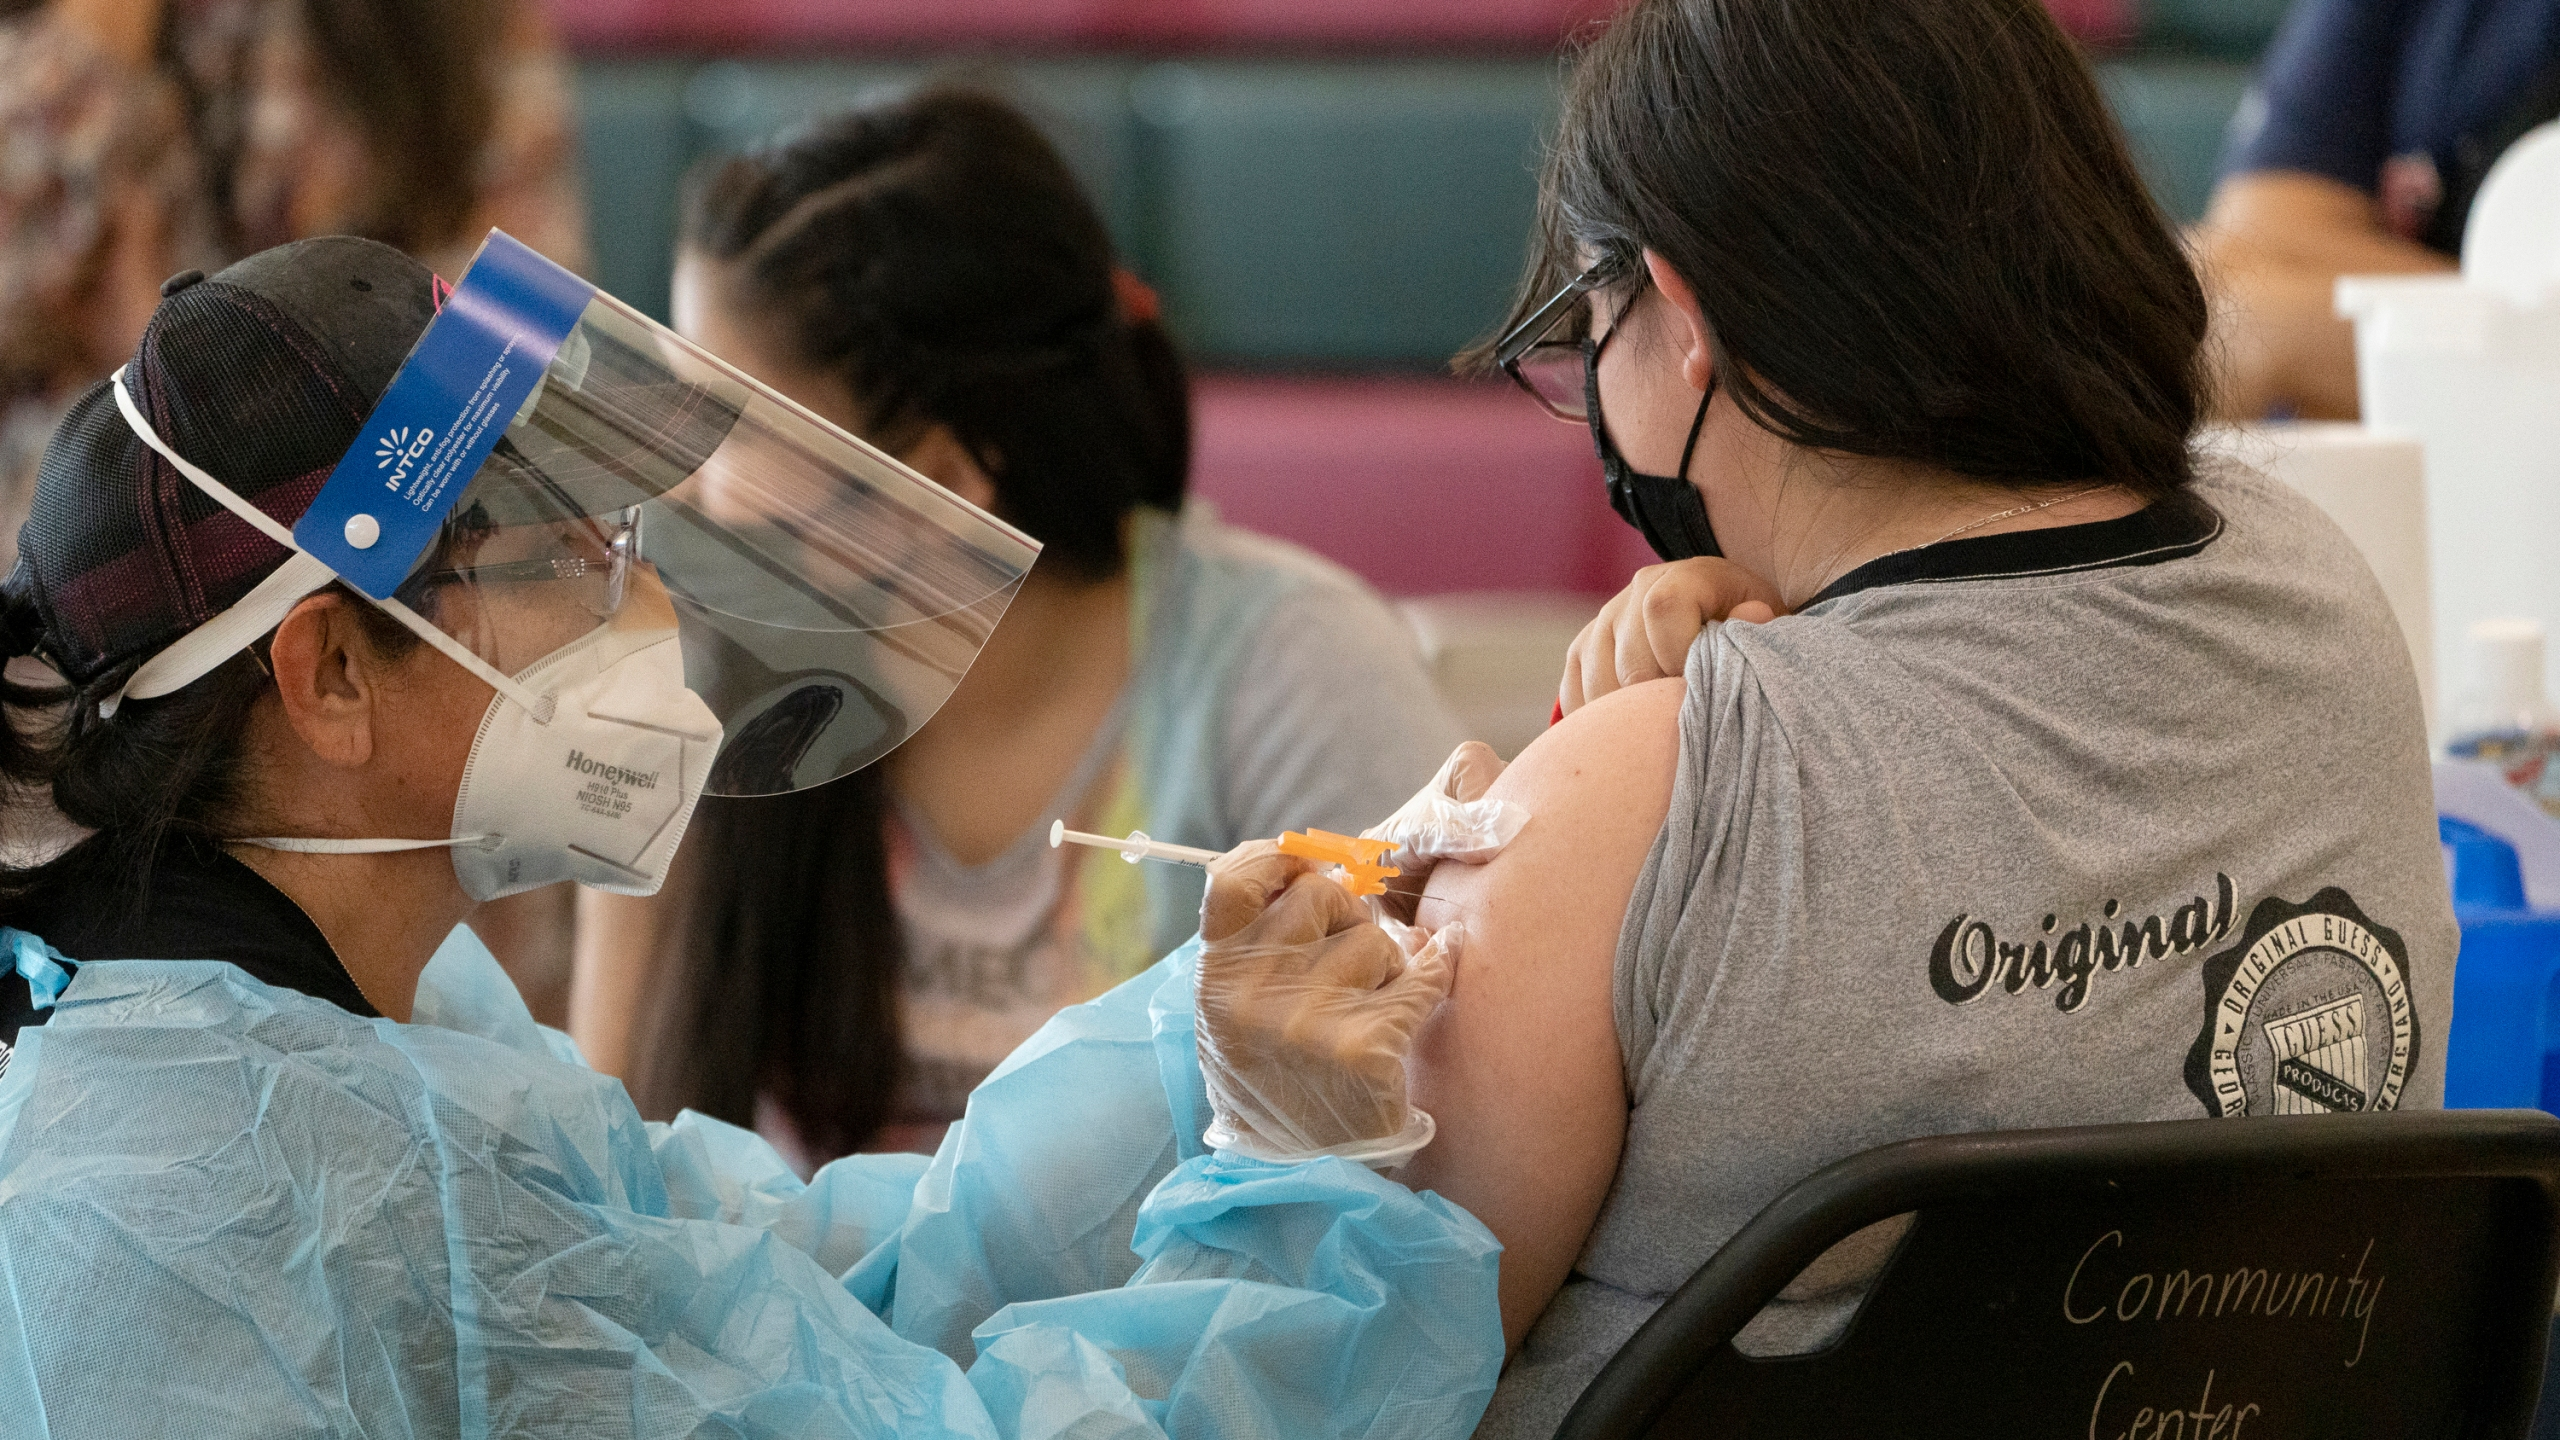 Sisters Guadalupe Flores, 15, right, and Estela Flores, 13, left, from East Los Angeles, get vaccinated with the Pfizer's COVID-19 vaccine by licensed vocational nurse Rita Orozco, far left, at the Esteban E. Torres High School in Los Angeles, Thursday, May 27, 2021. (AP Photo/Damian Dovarganes)